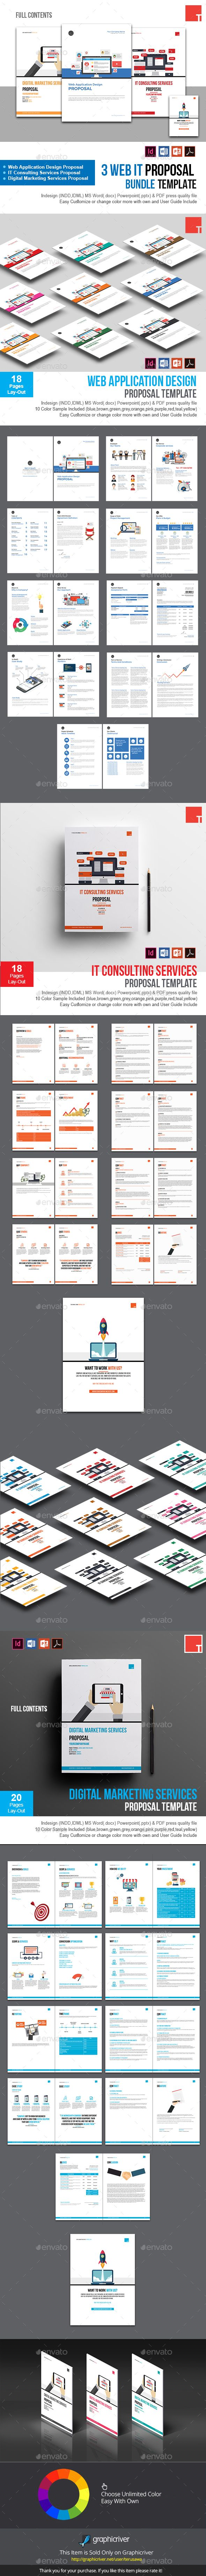 3 Web IT Proposal Bundle Template — InDesign INDD #web apps #acceptance • Available here → https://graphicriver.net/item/3-web-it-proposal-bundle-template/20652425?ref=pxcr